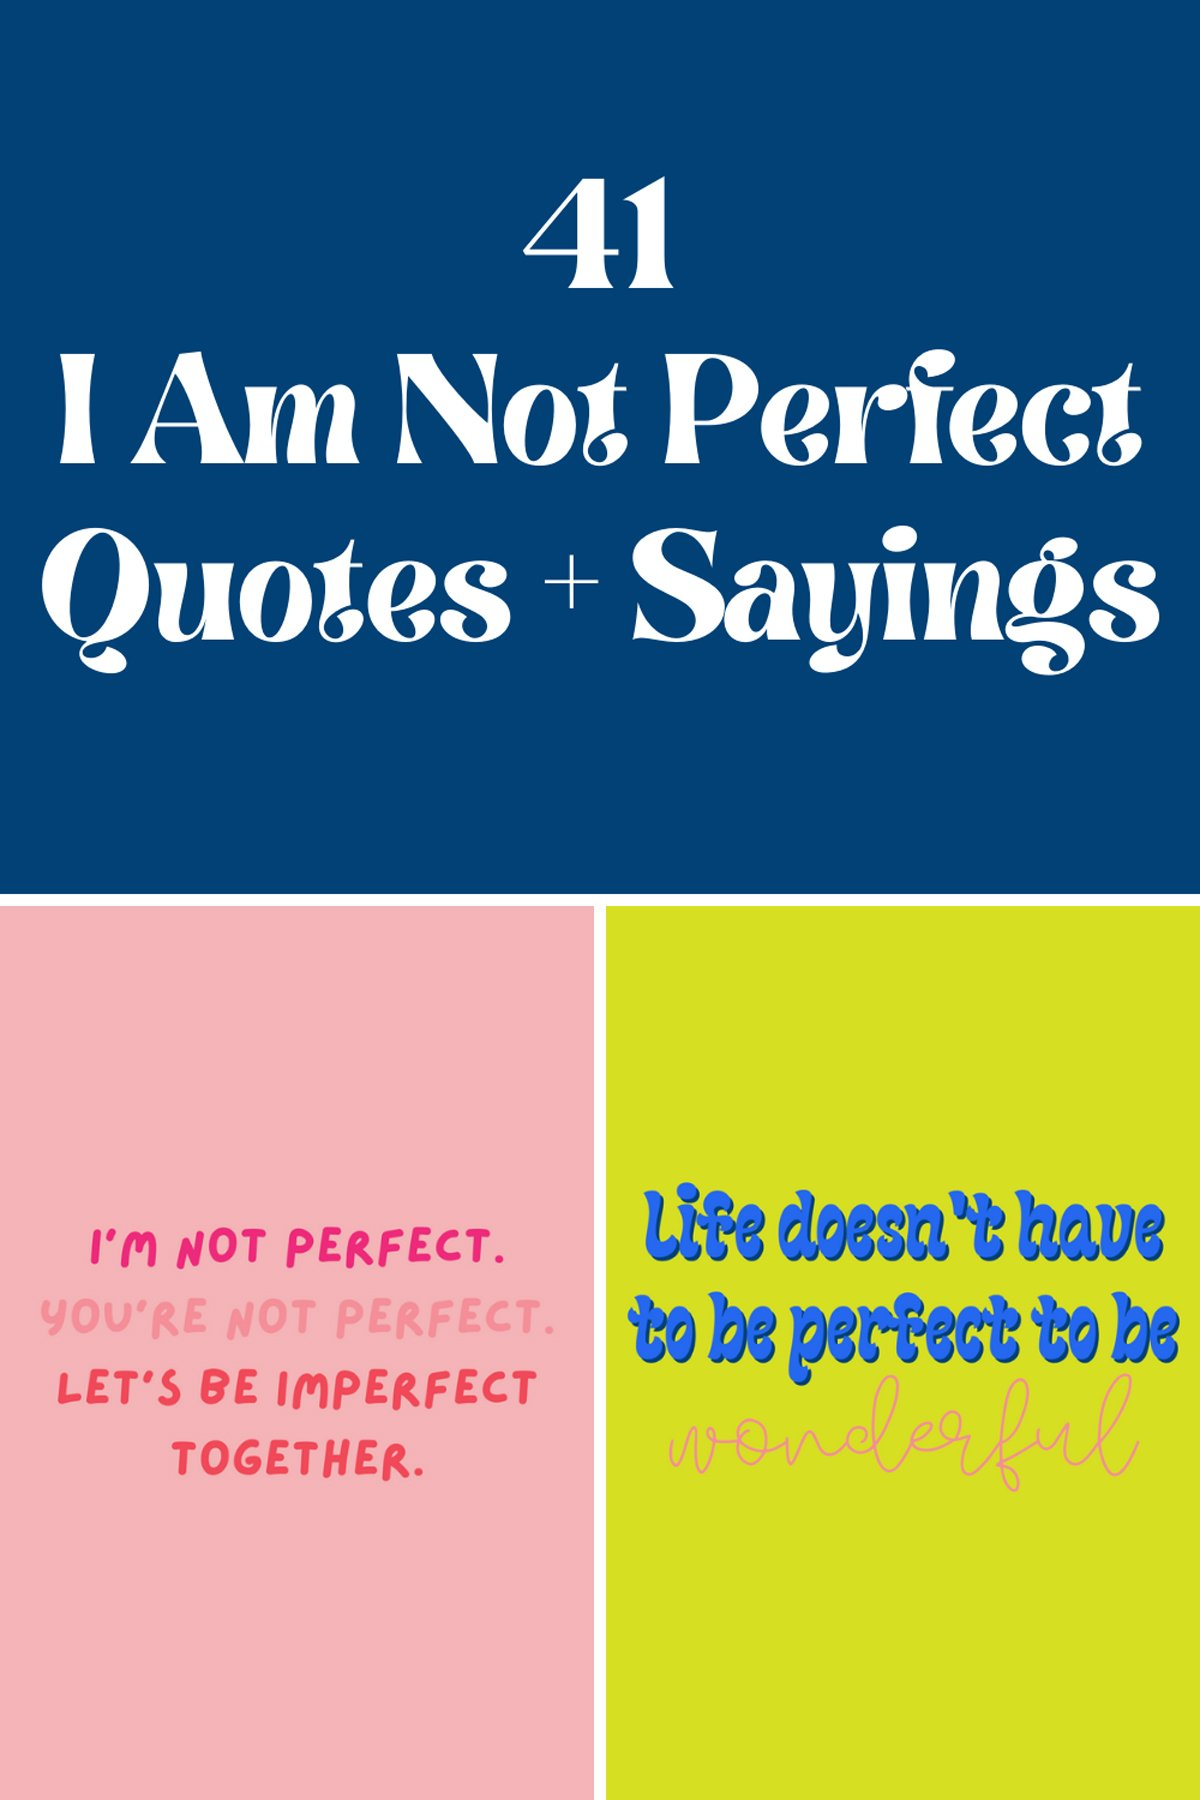 I am not perfect quotes for her